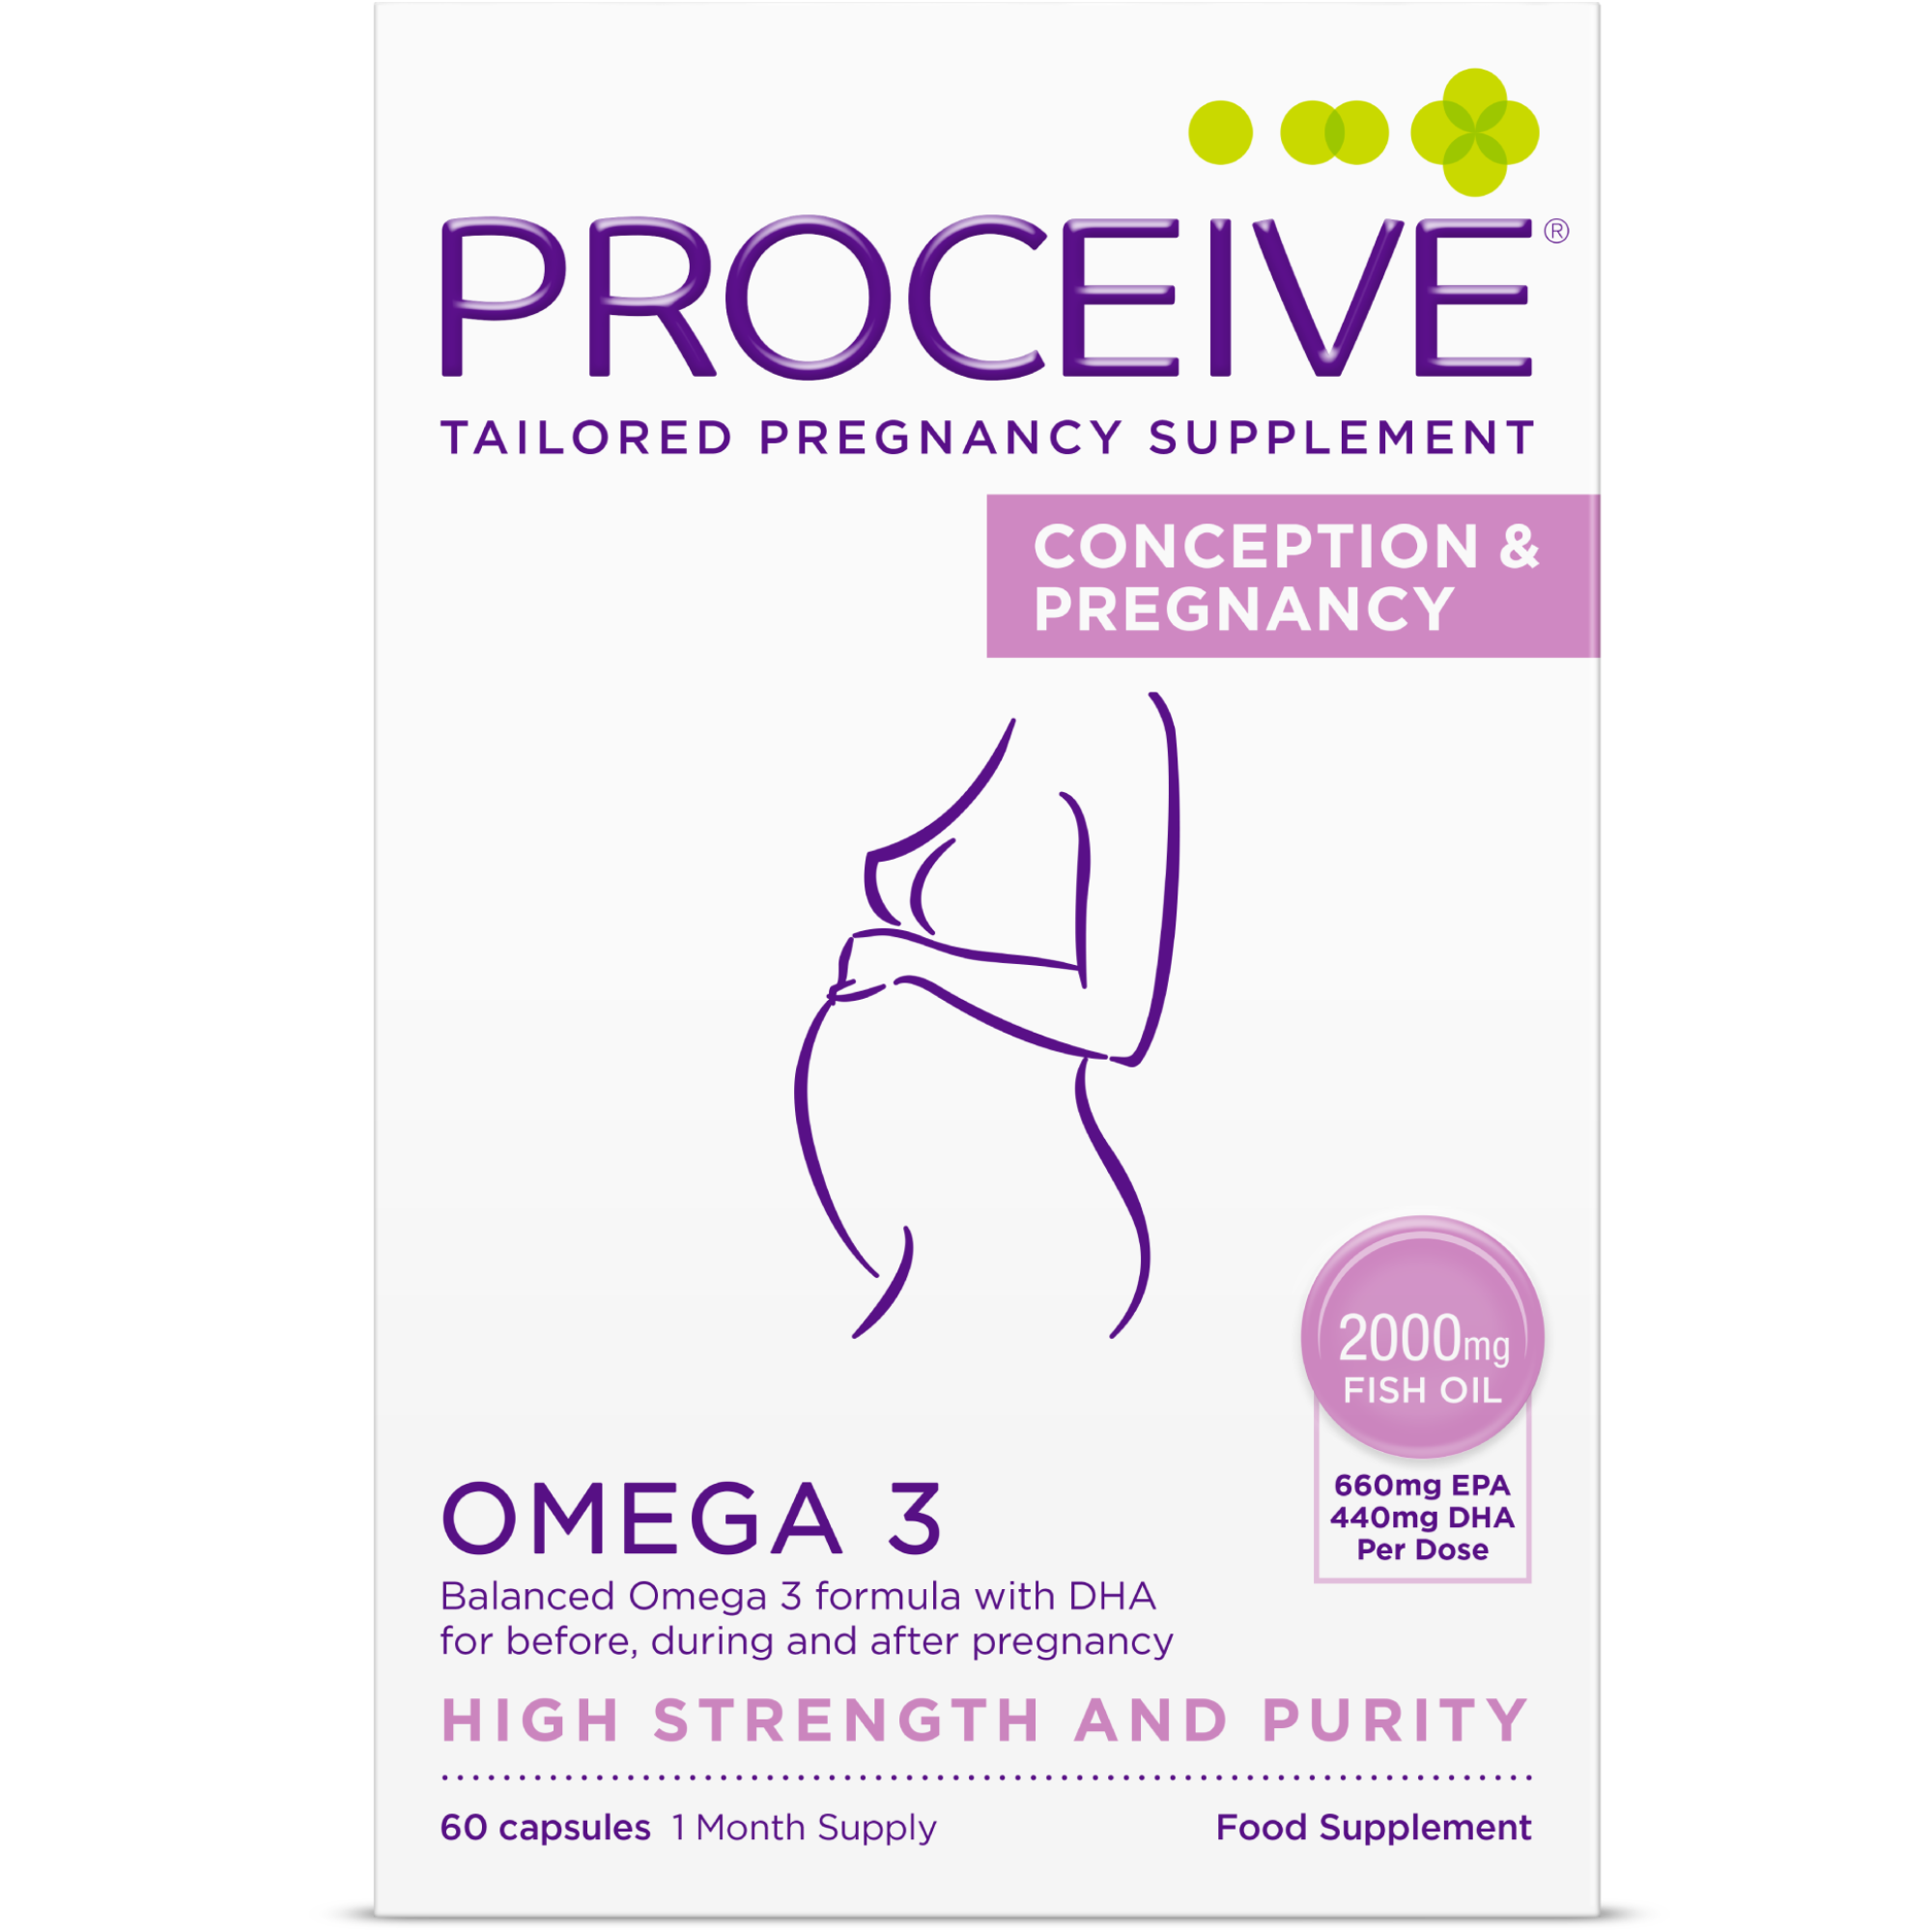 PROCEIVE® Conception and Pregnancy Omega 3